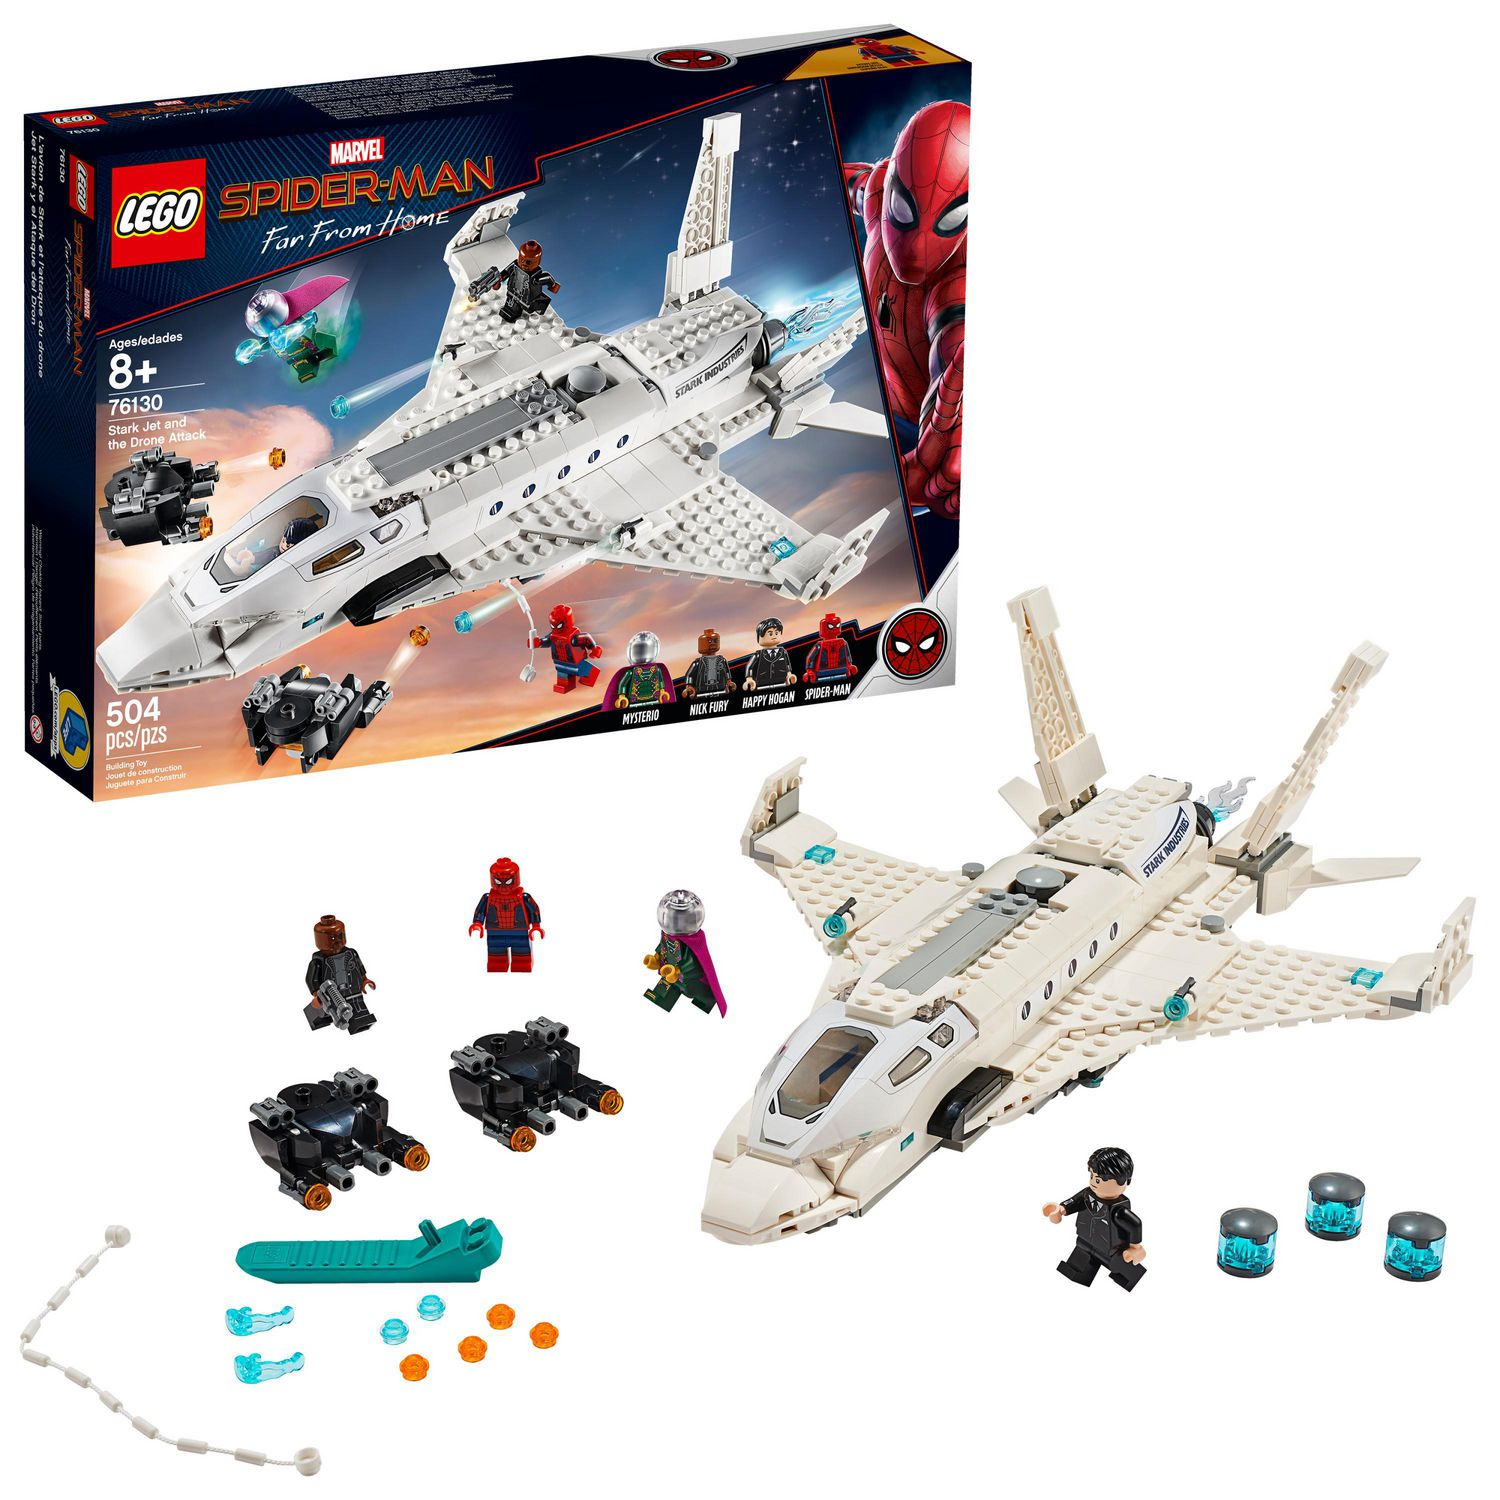 LEGO SPIDERMAN STARK JET AND THE DRONE ATTACK BRAND NEW IN BOX FOR AGES 8 YEARS